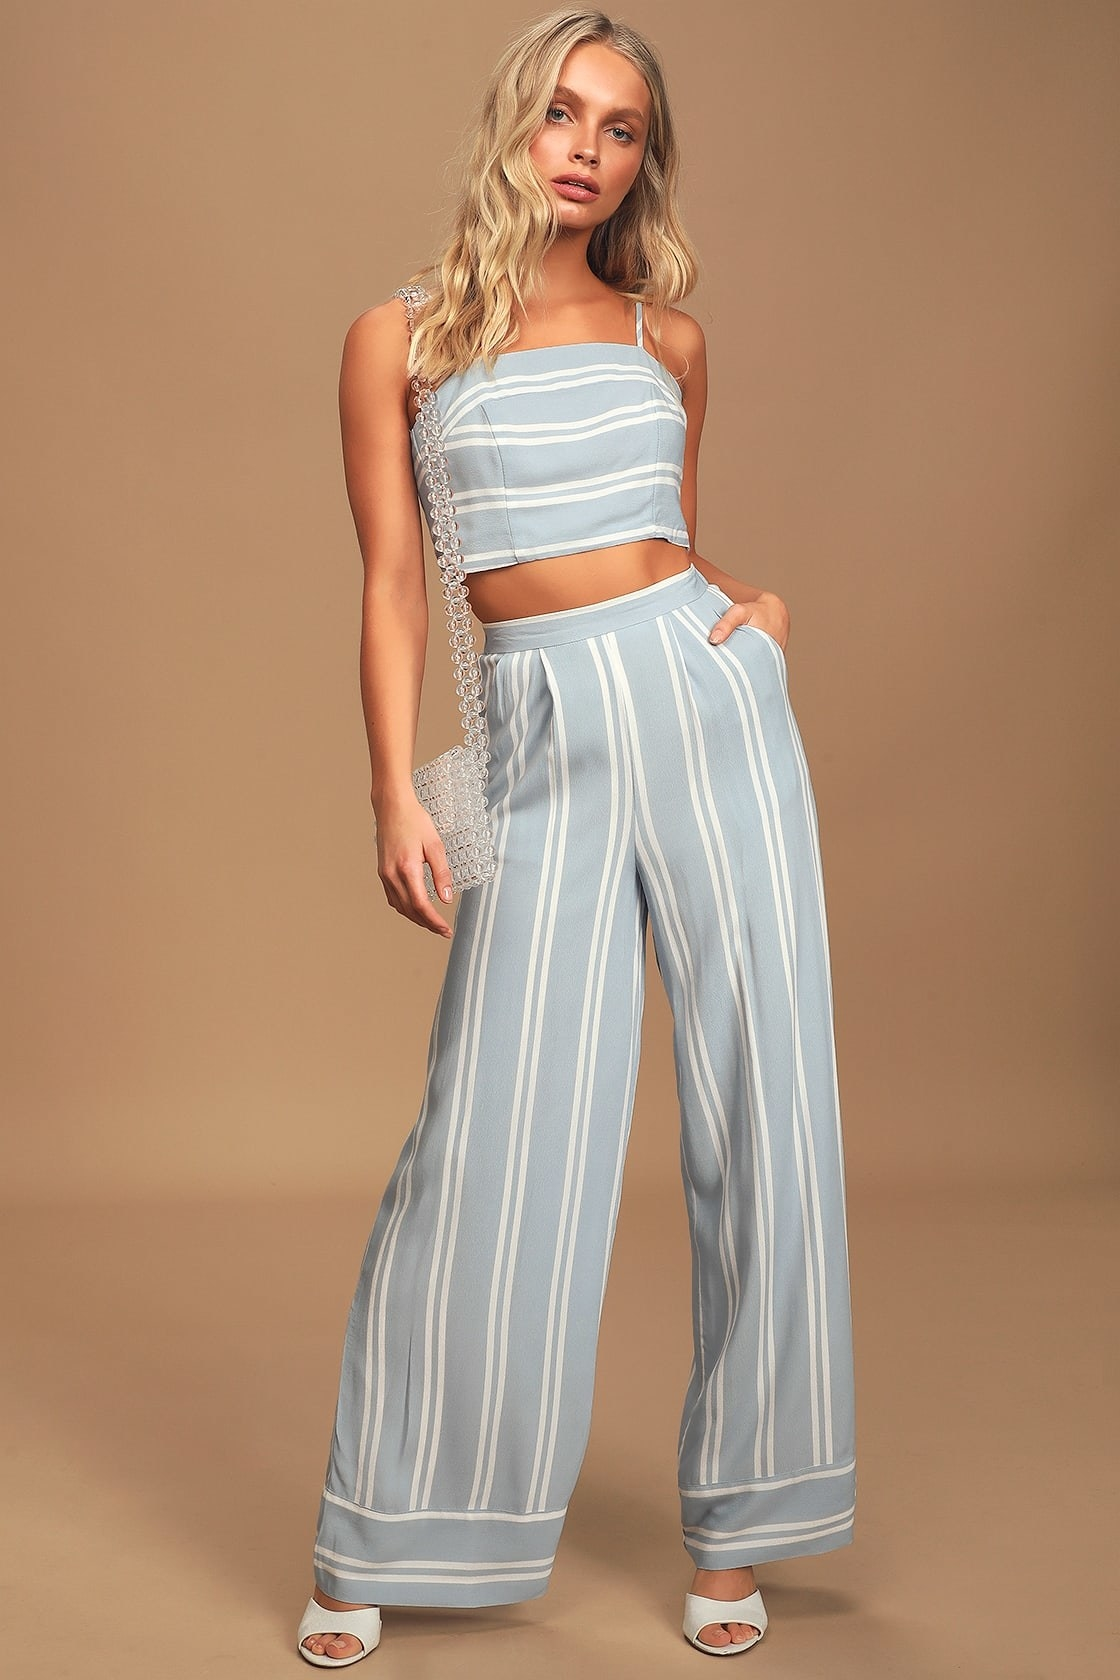 Model wearing the light blue and white strappy tie back top and high-waisted wide leg pants